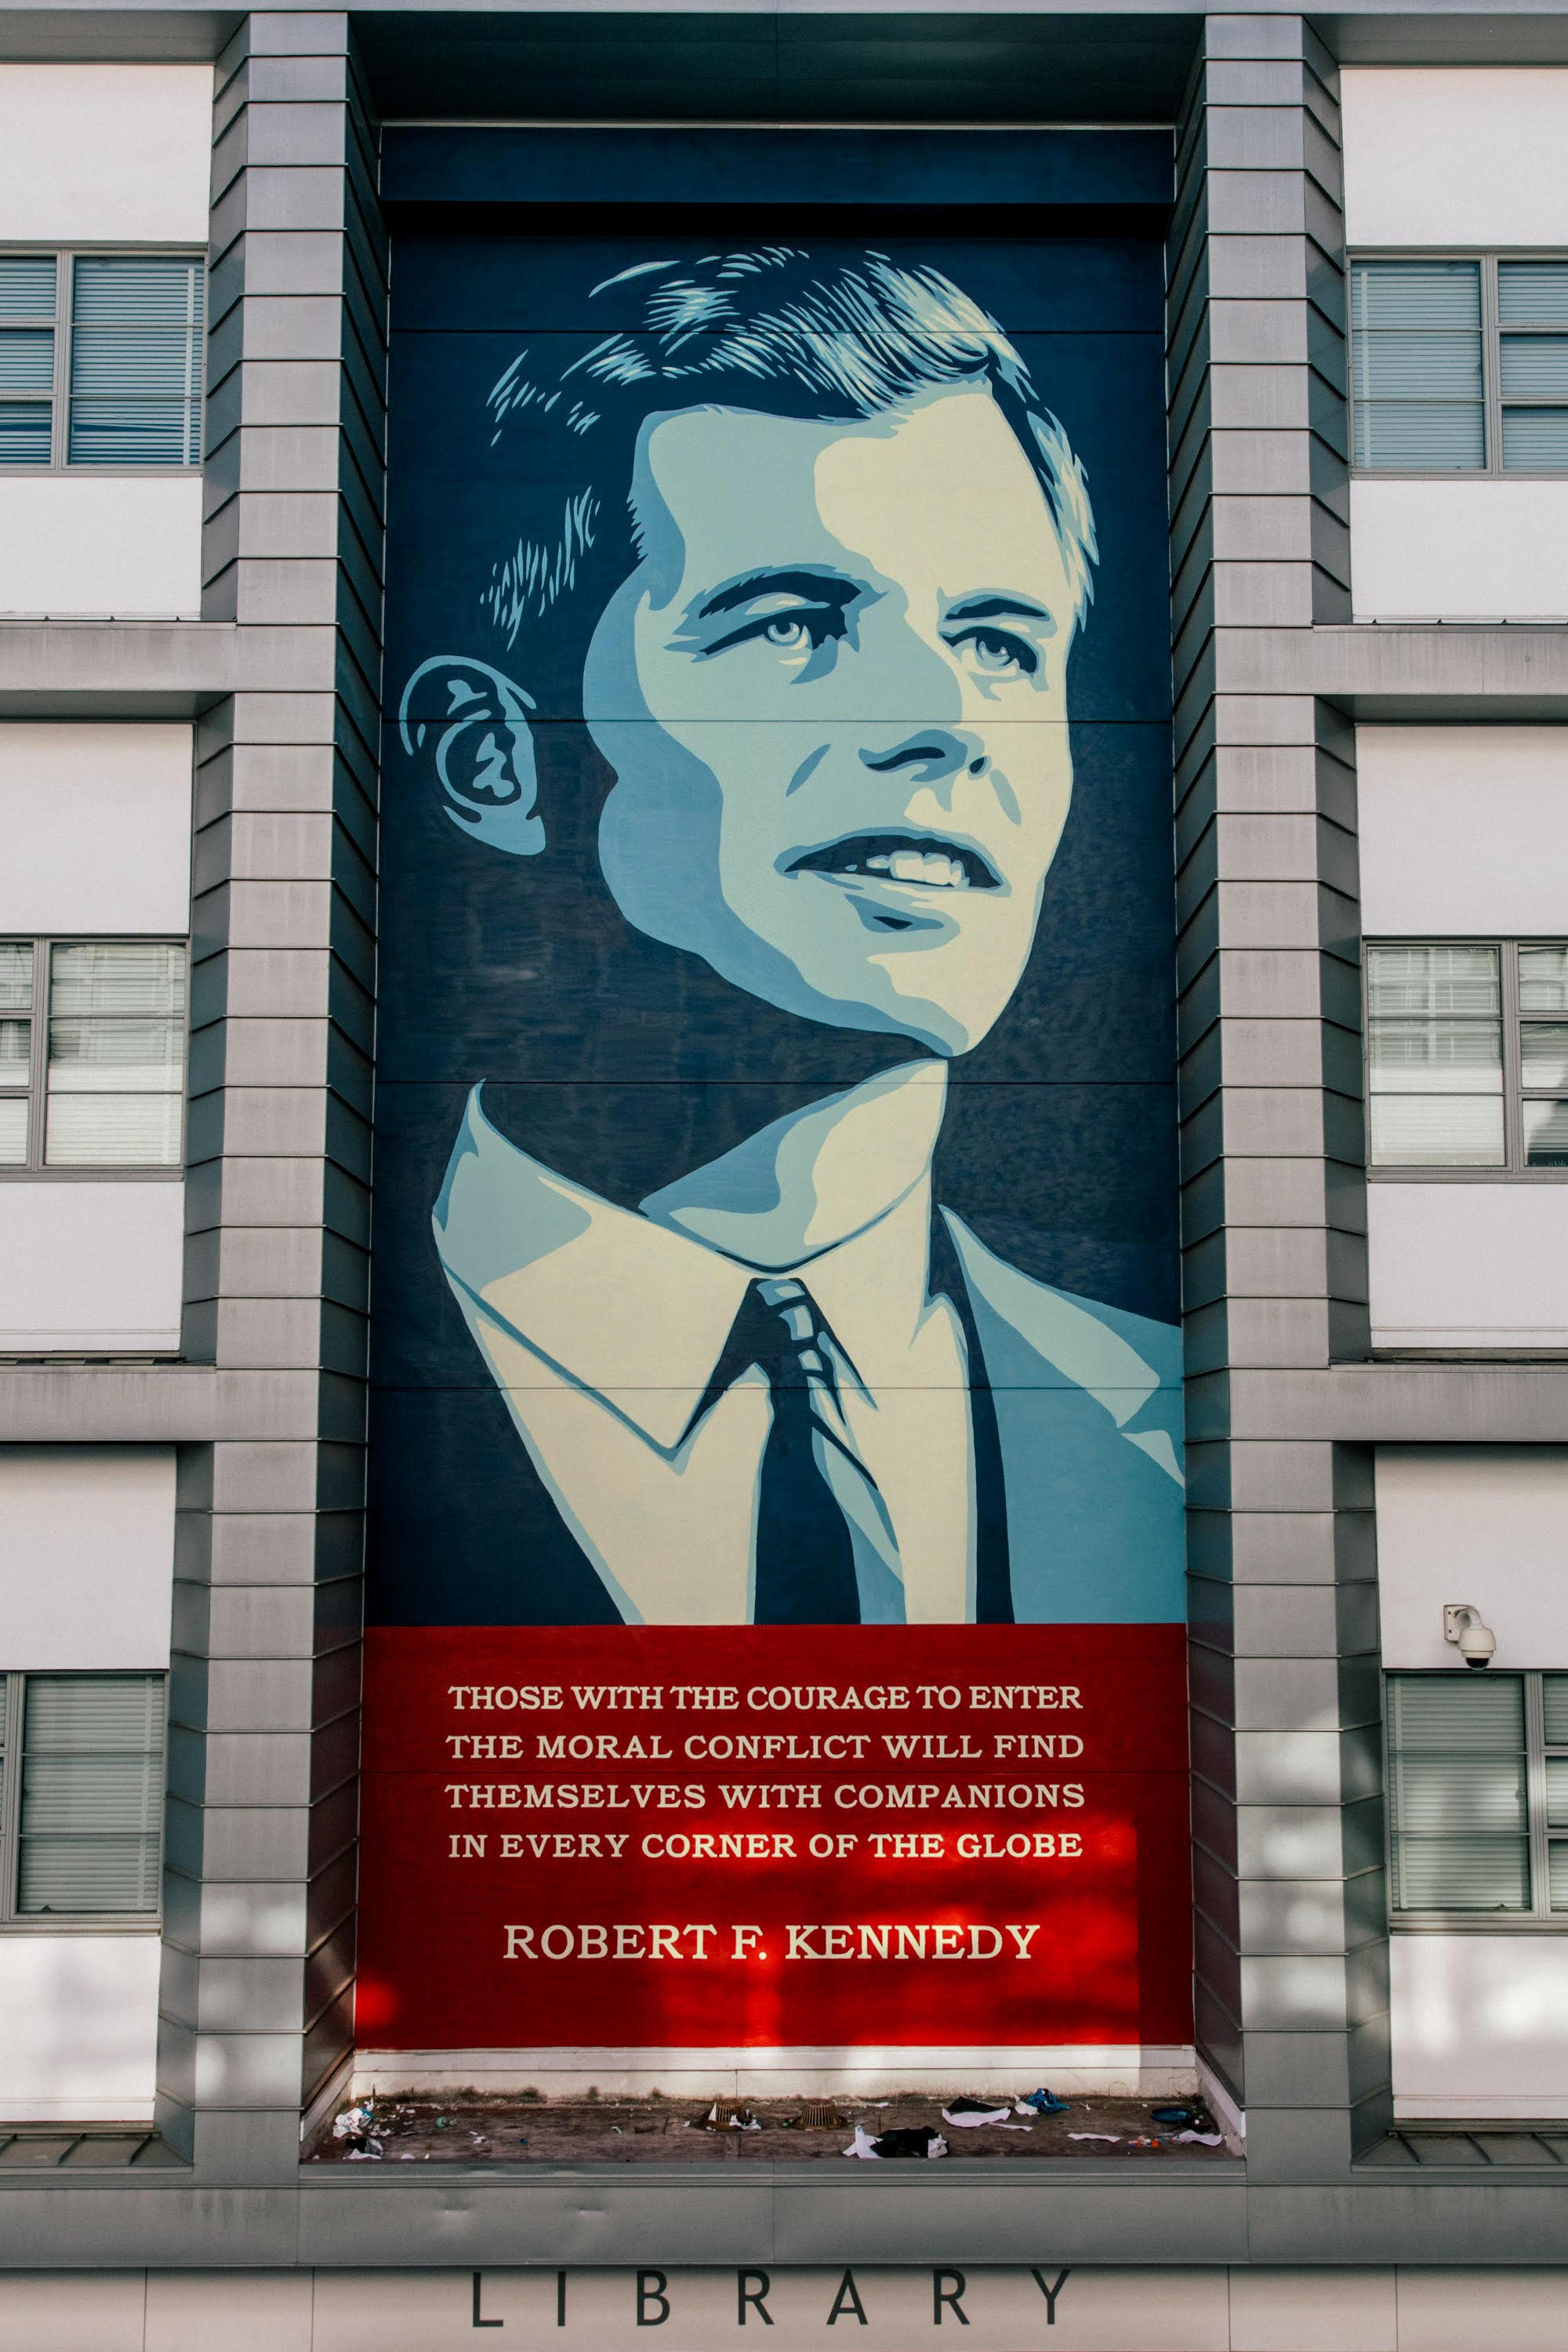 Robert F. Kennedy by Shepard Fairey | Photo: Obey Giant